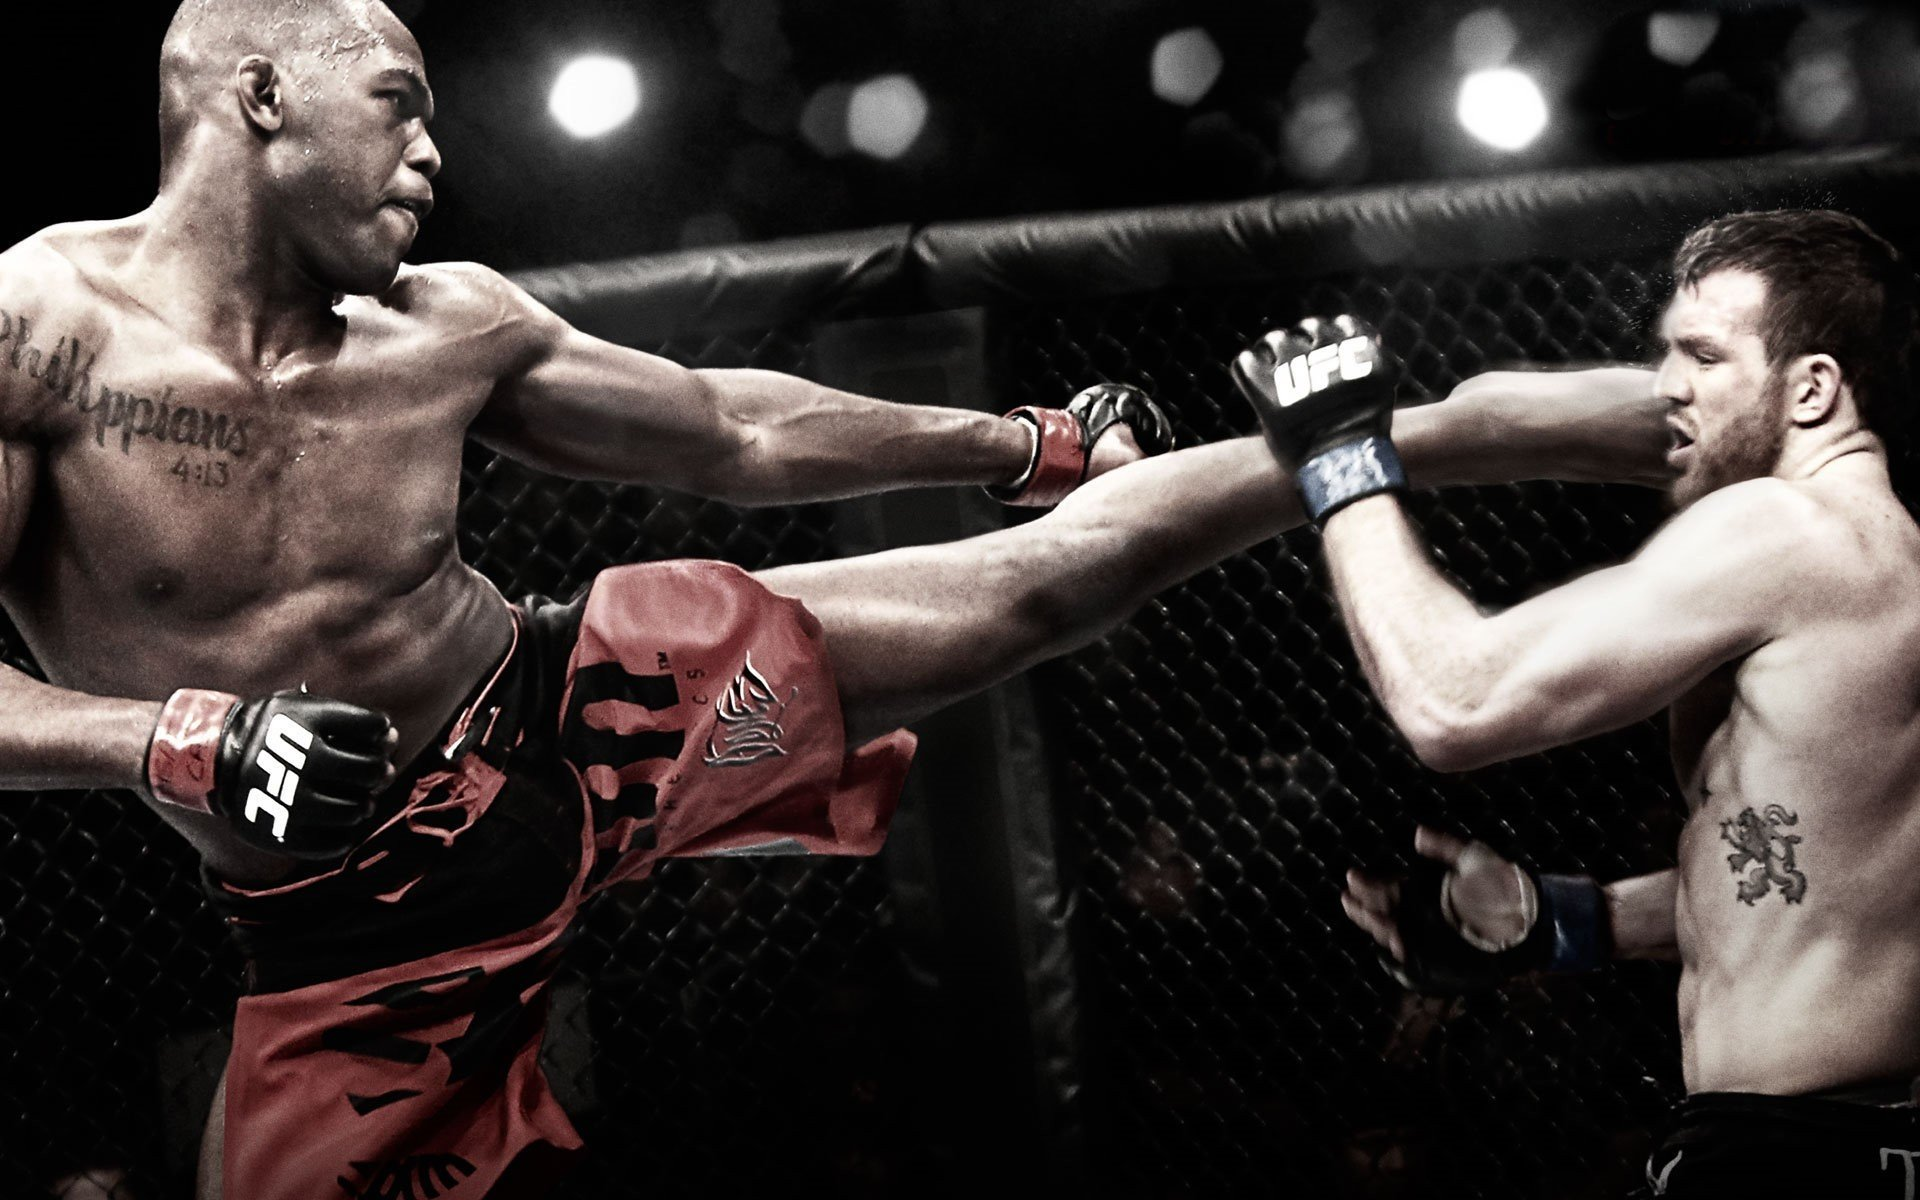 Awesome Mma Mixed Martial Arts Free Wallpaper Id 389437 For Hd 1920x1200 Desktop